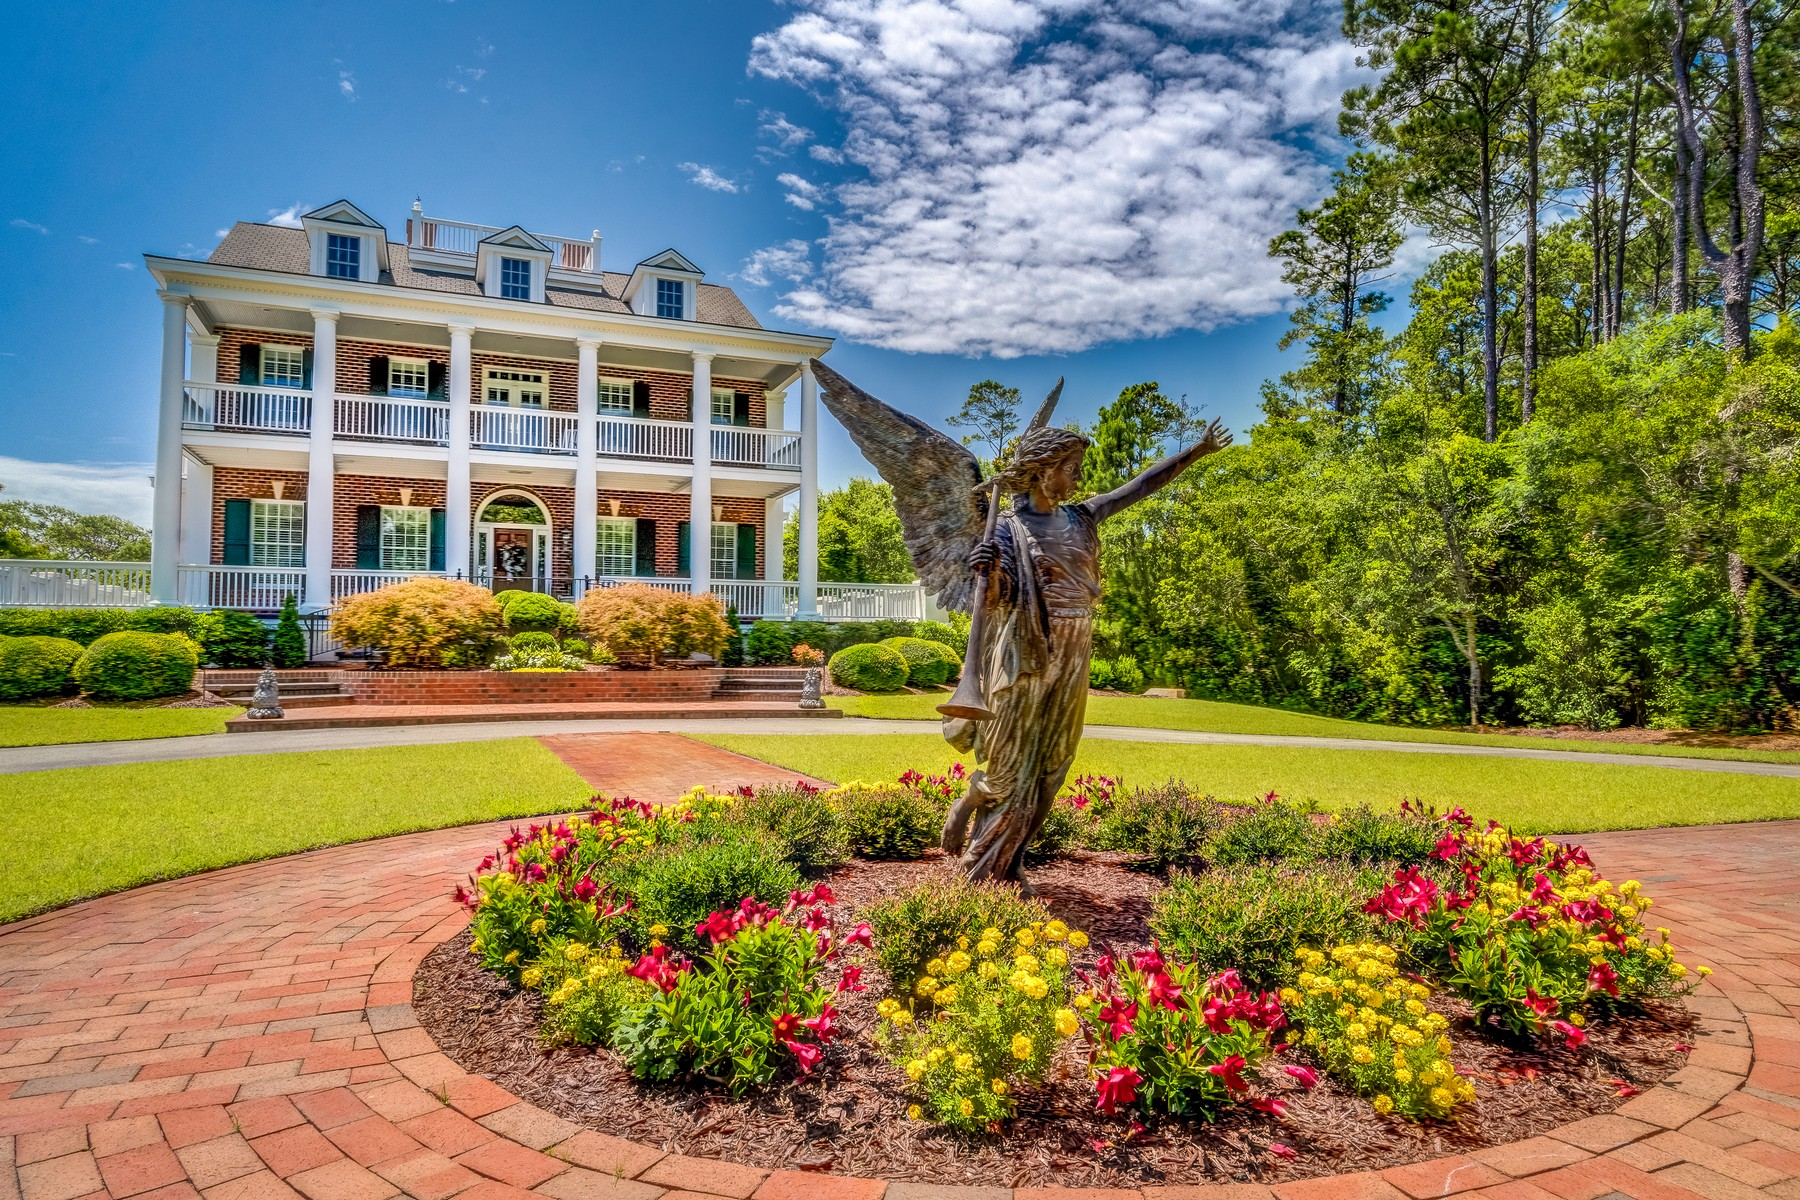 Single Family Home for Sale at Private Waterfront Estate offers only Finest Appointments 118 Buena Vista Drive, Newport, North Carolina, 28470 United States